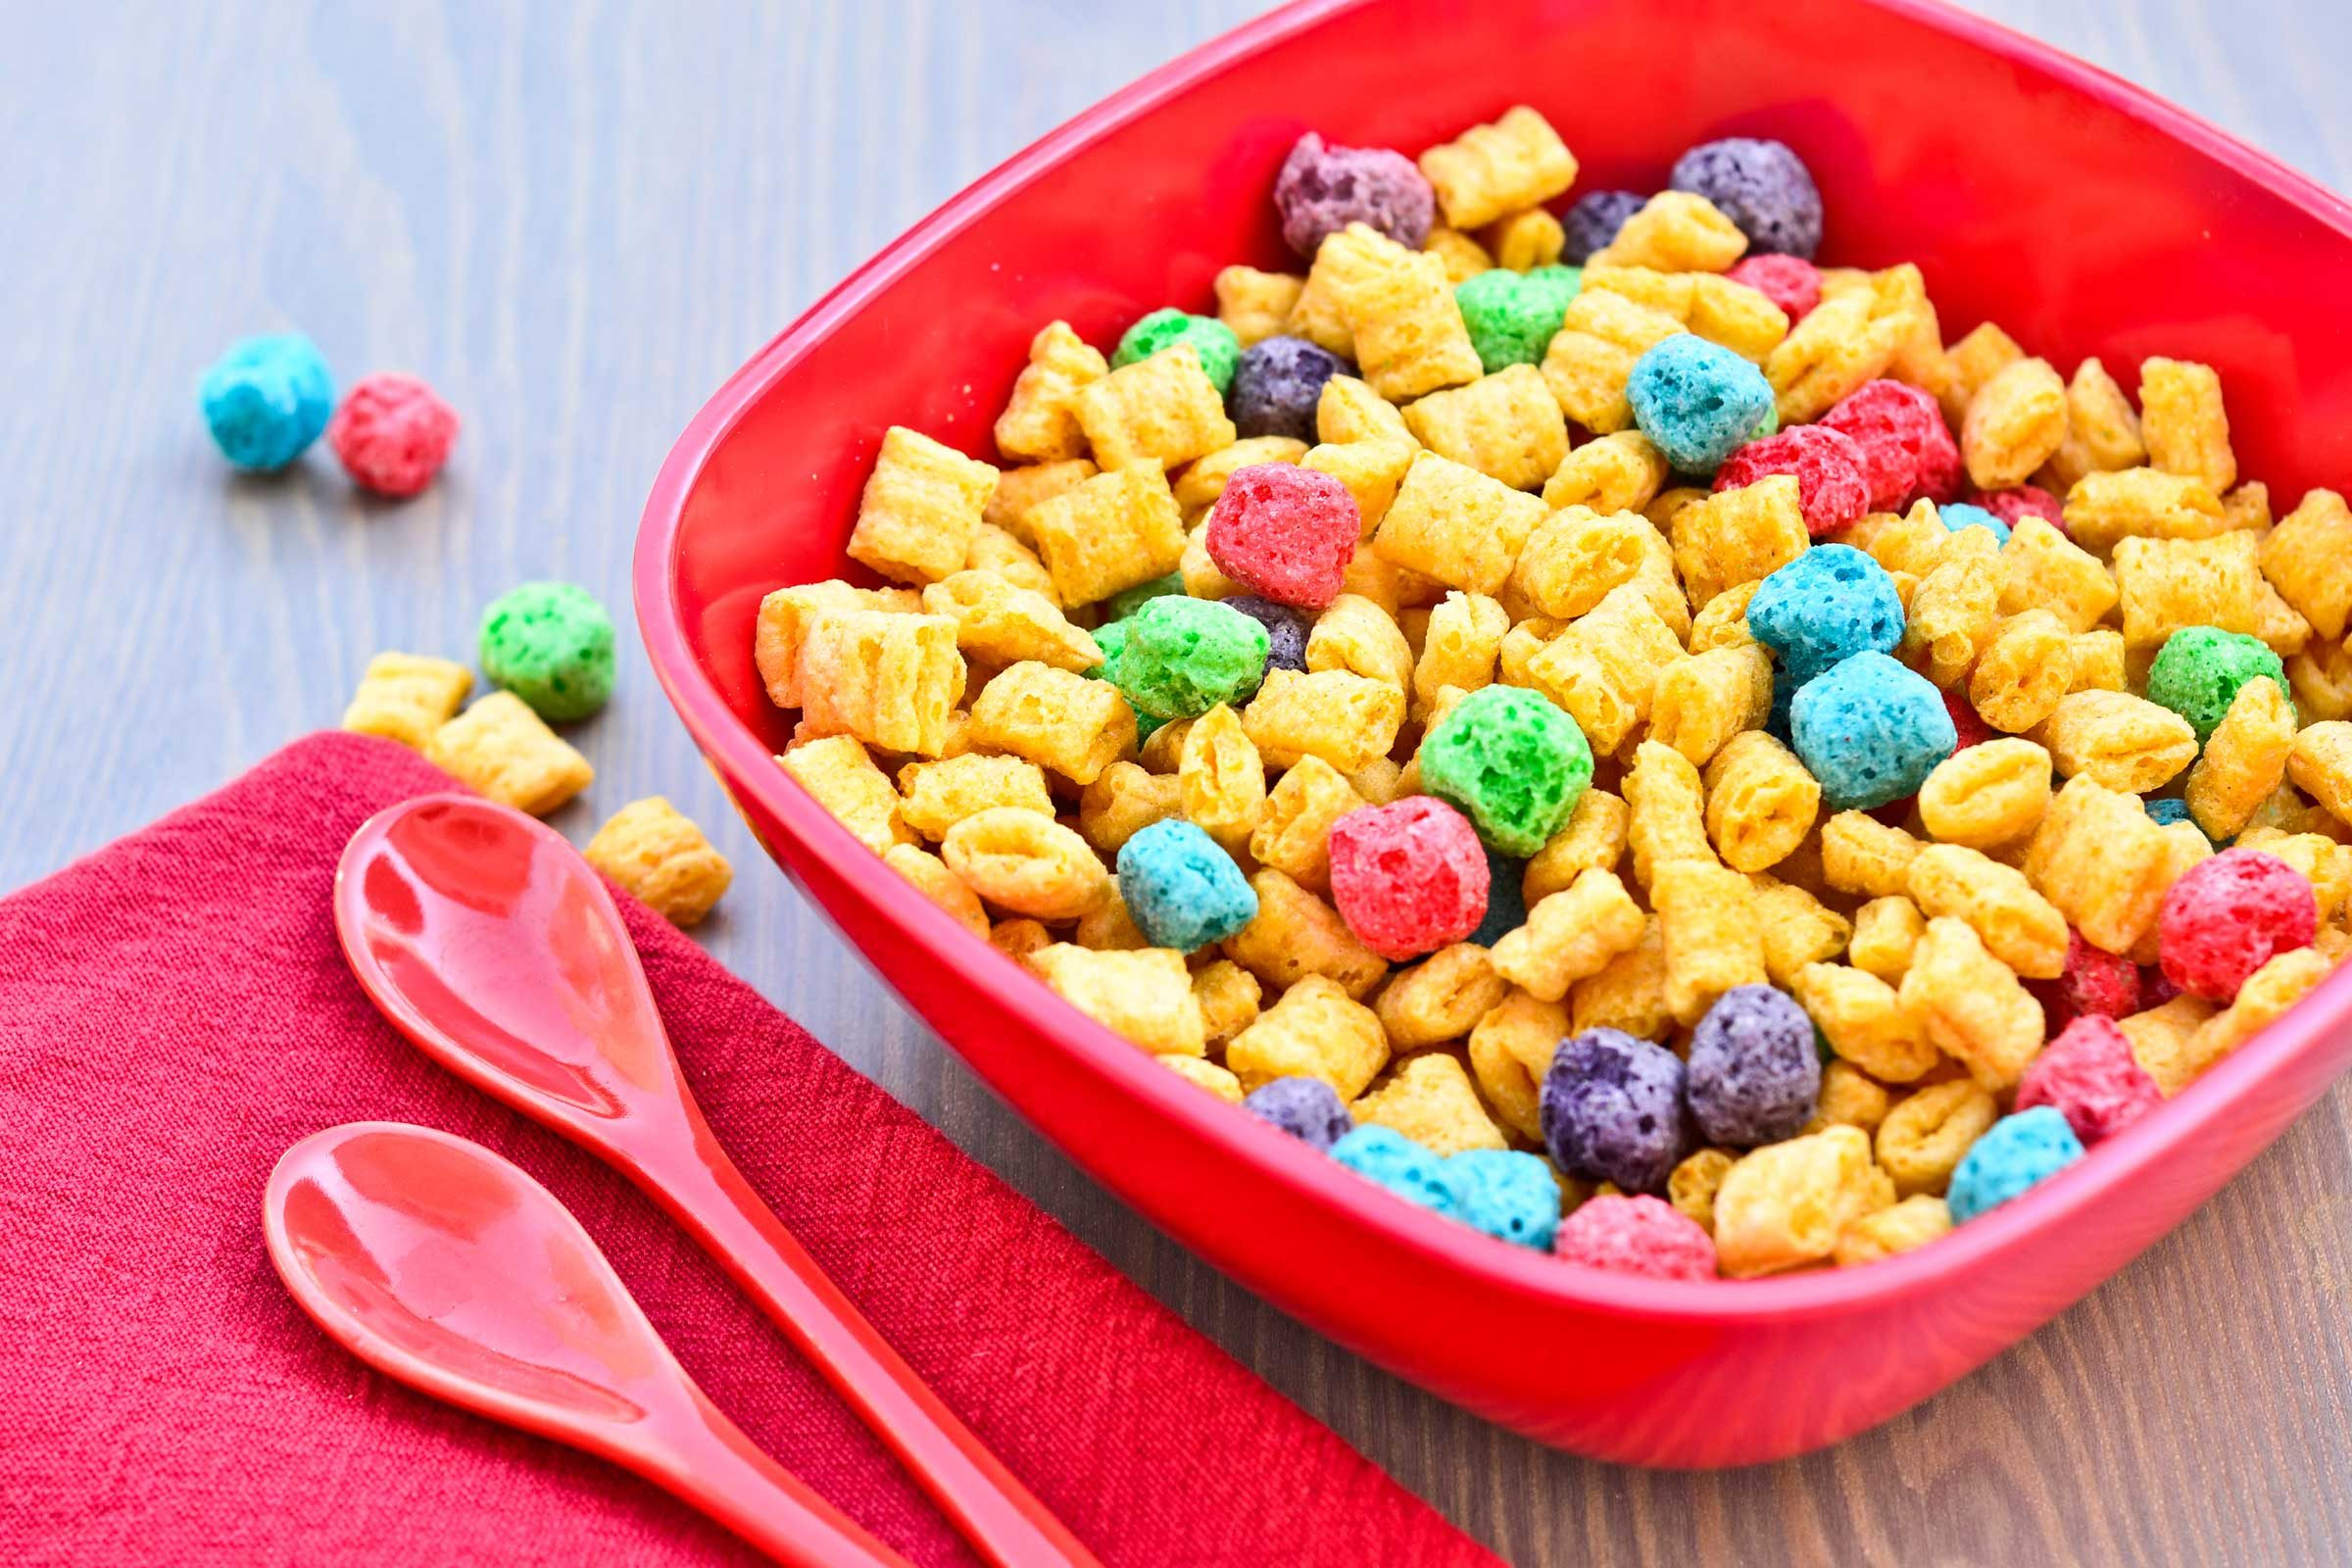 research on breakfast cereal A list of breakfast cereals organized by the year they were introduced ranging from 1863 to the present.